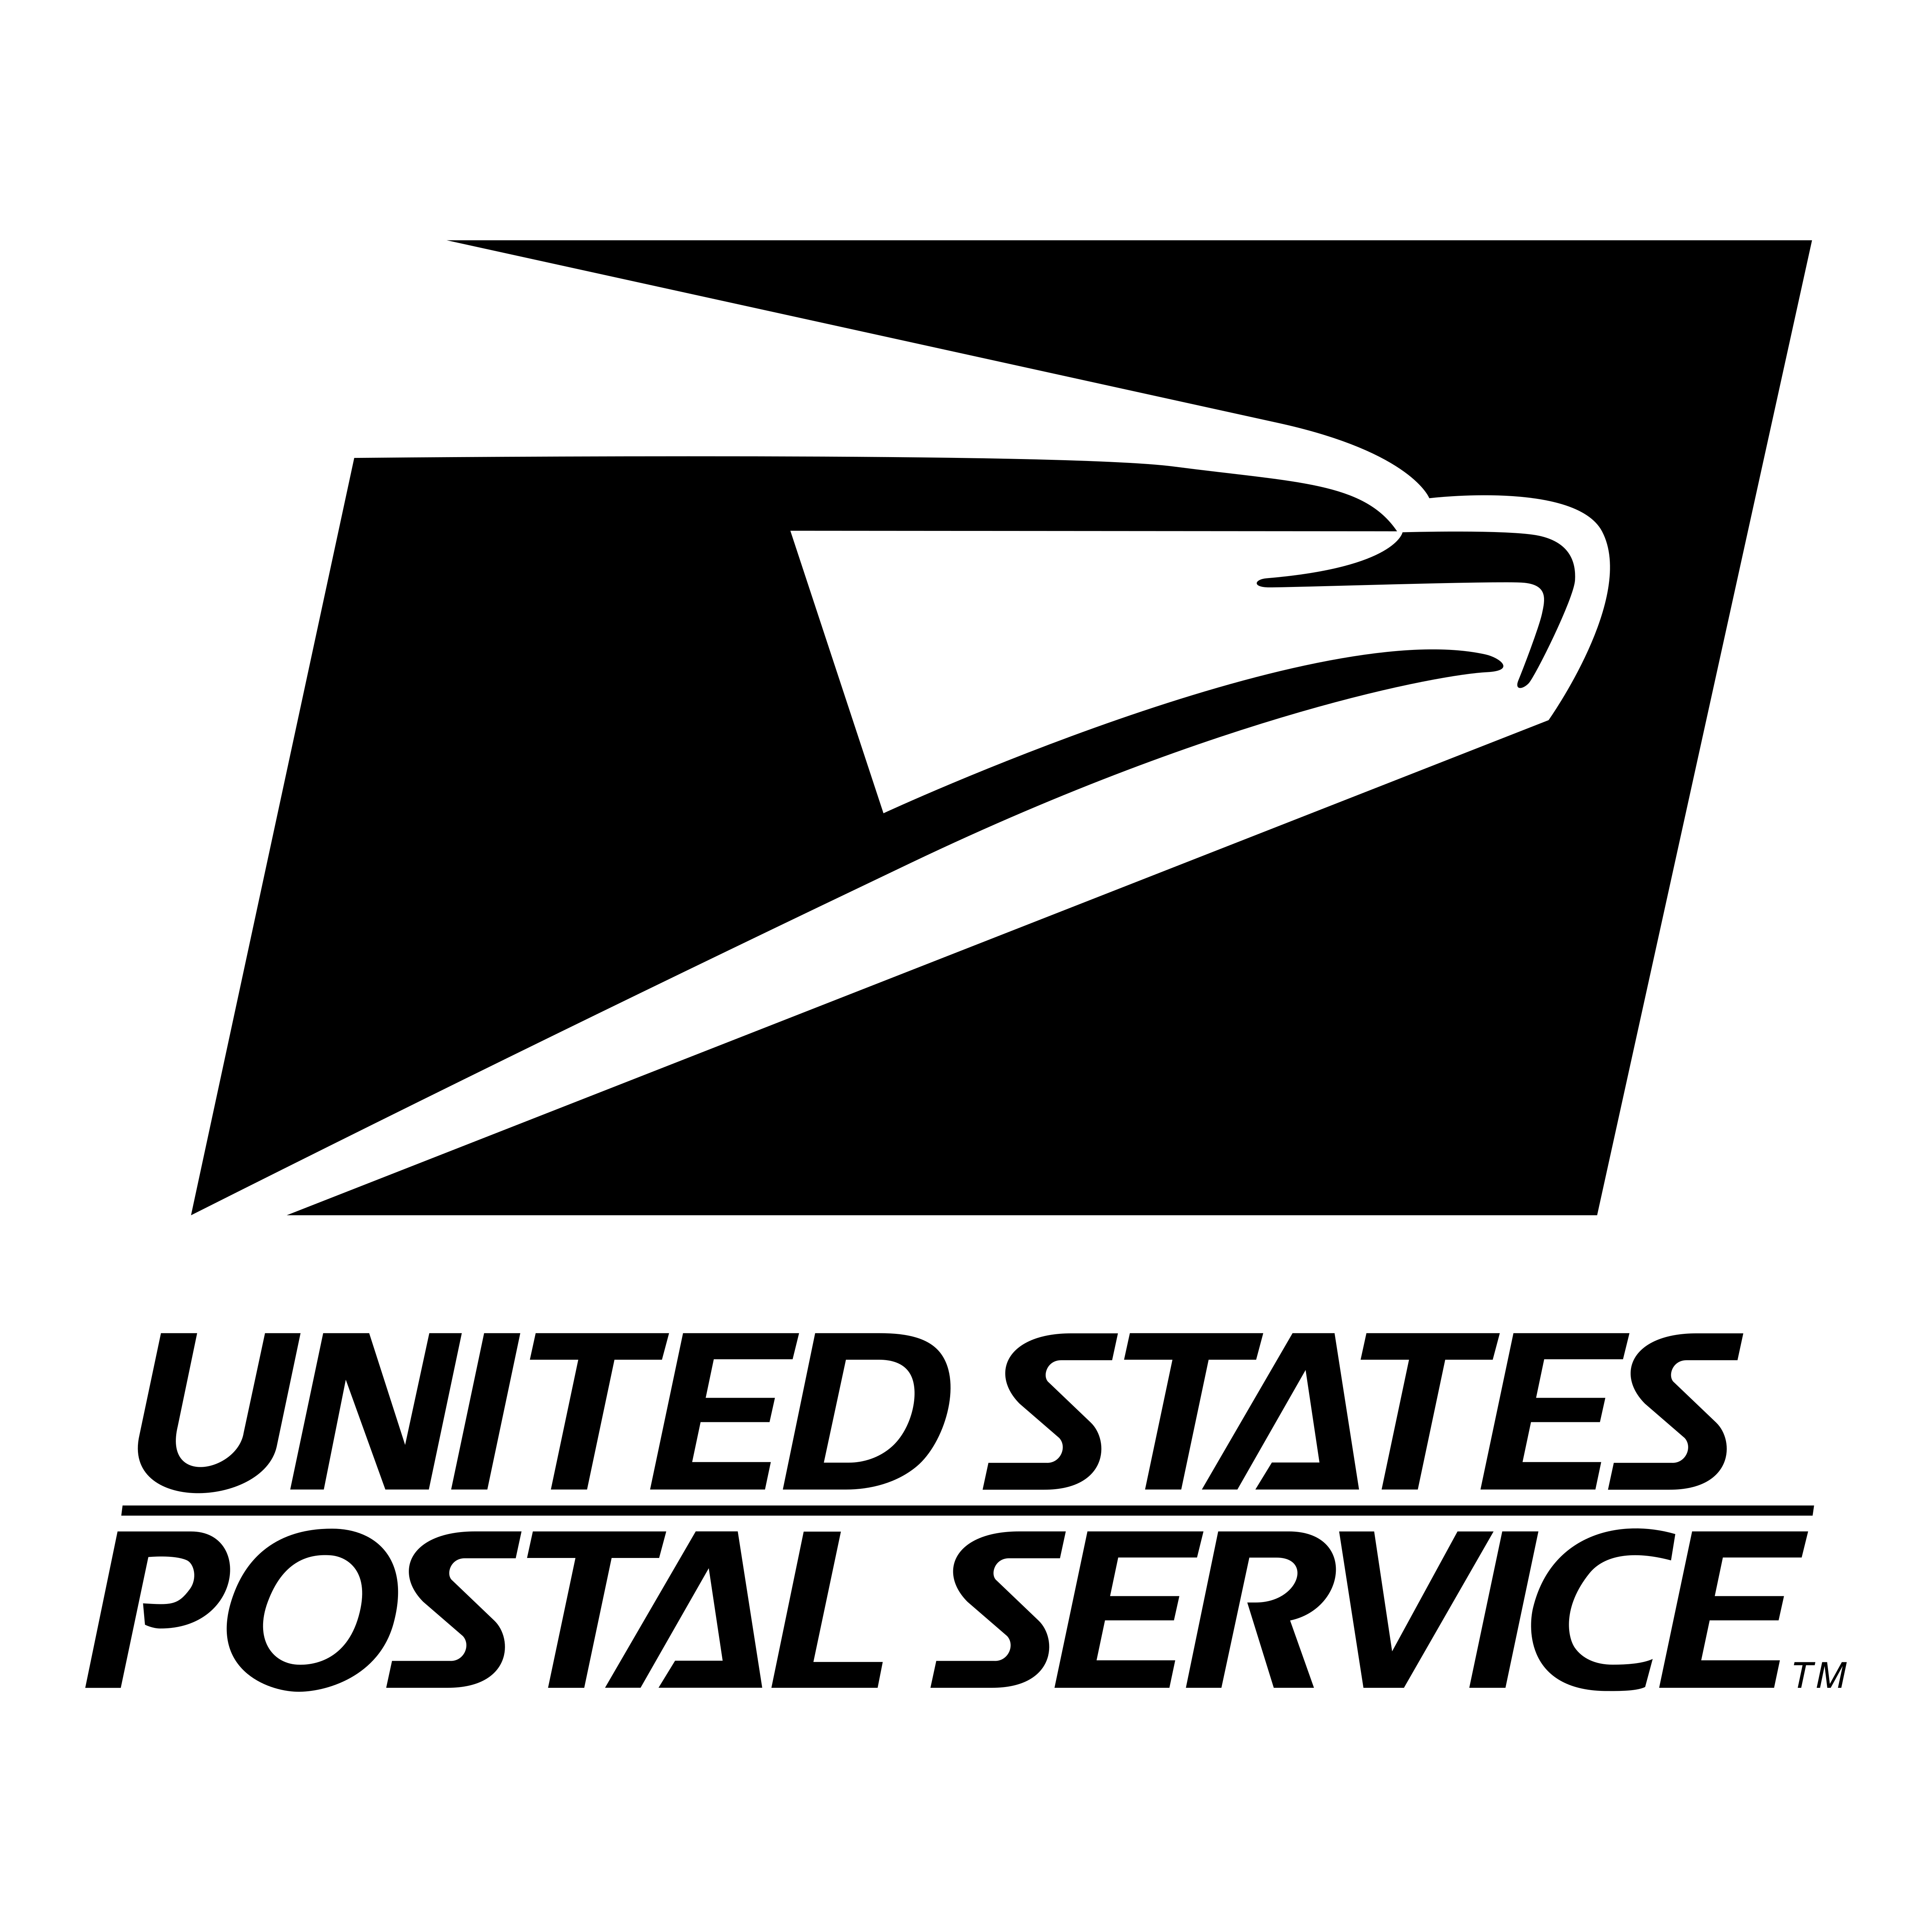 Your Post Office shipping receipt Your sales receipt if you bought insurance at the Post Office Your email confirmation if you shipped from USPScom